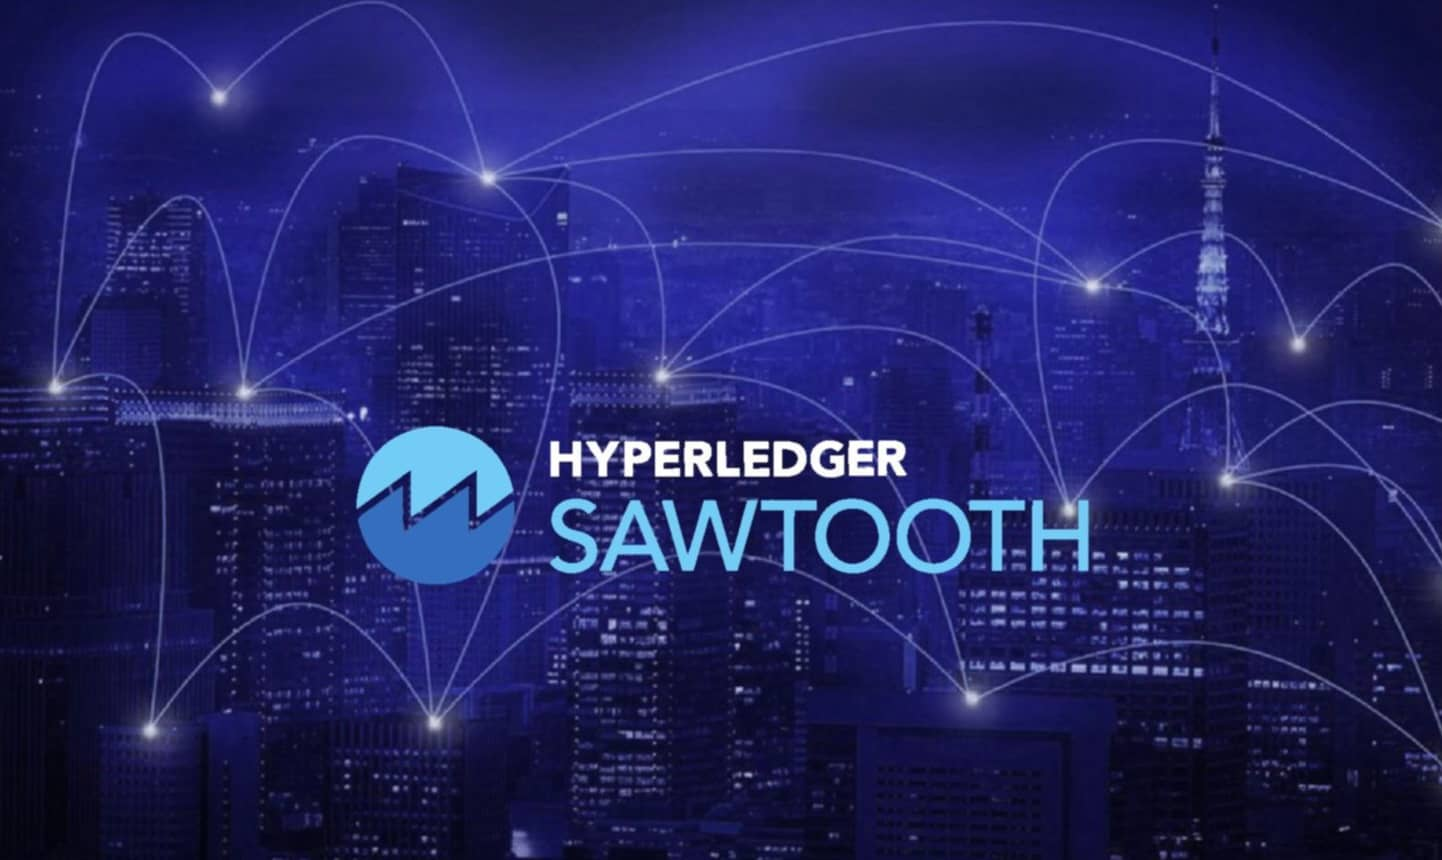 Hyperledger Sawtooth Architecture: An Introduction To The Validator Network